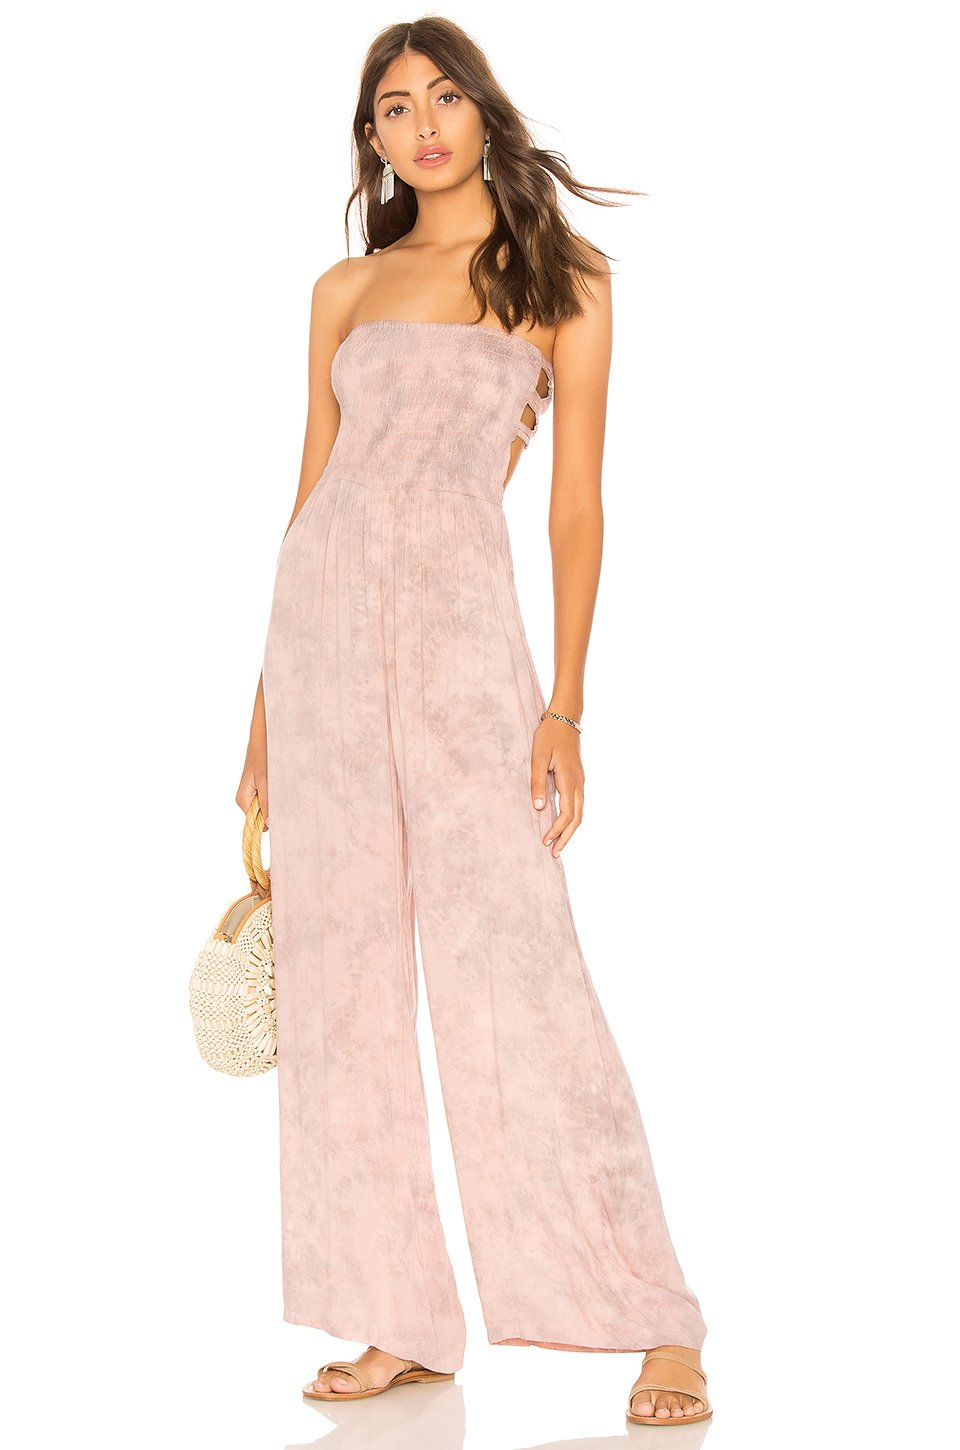 Bennett Jumpsuit in Rose Smoke Tie Dye